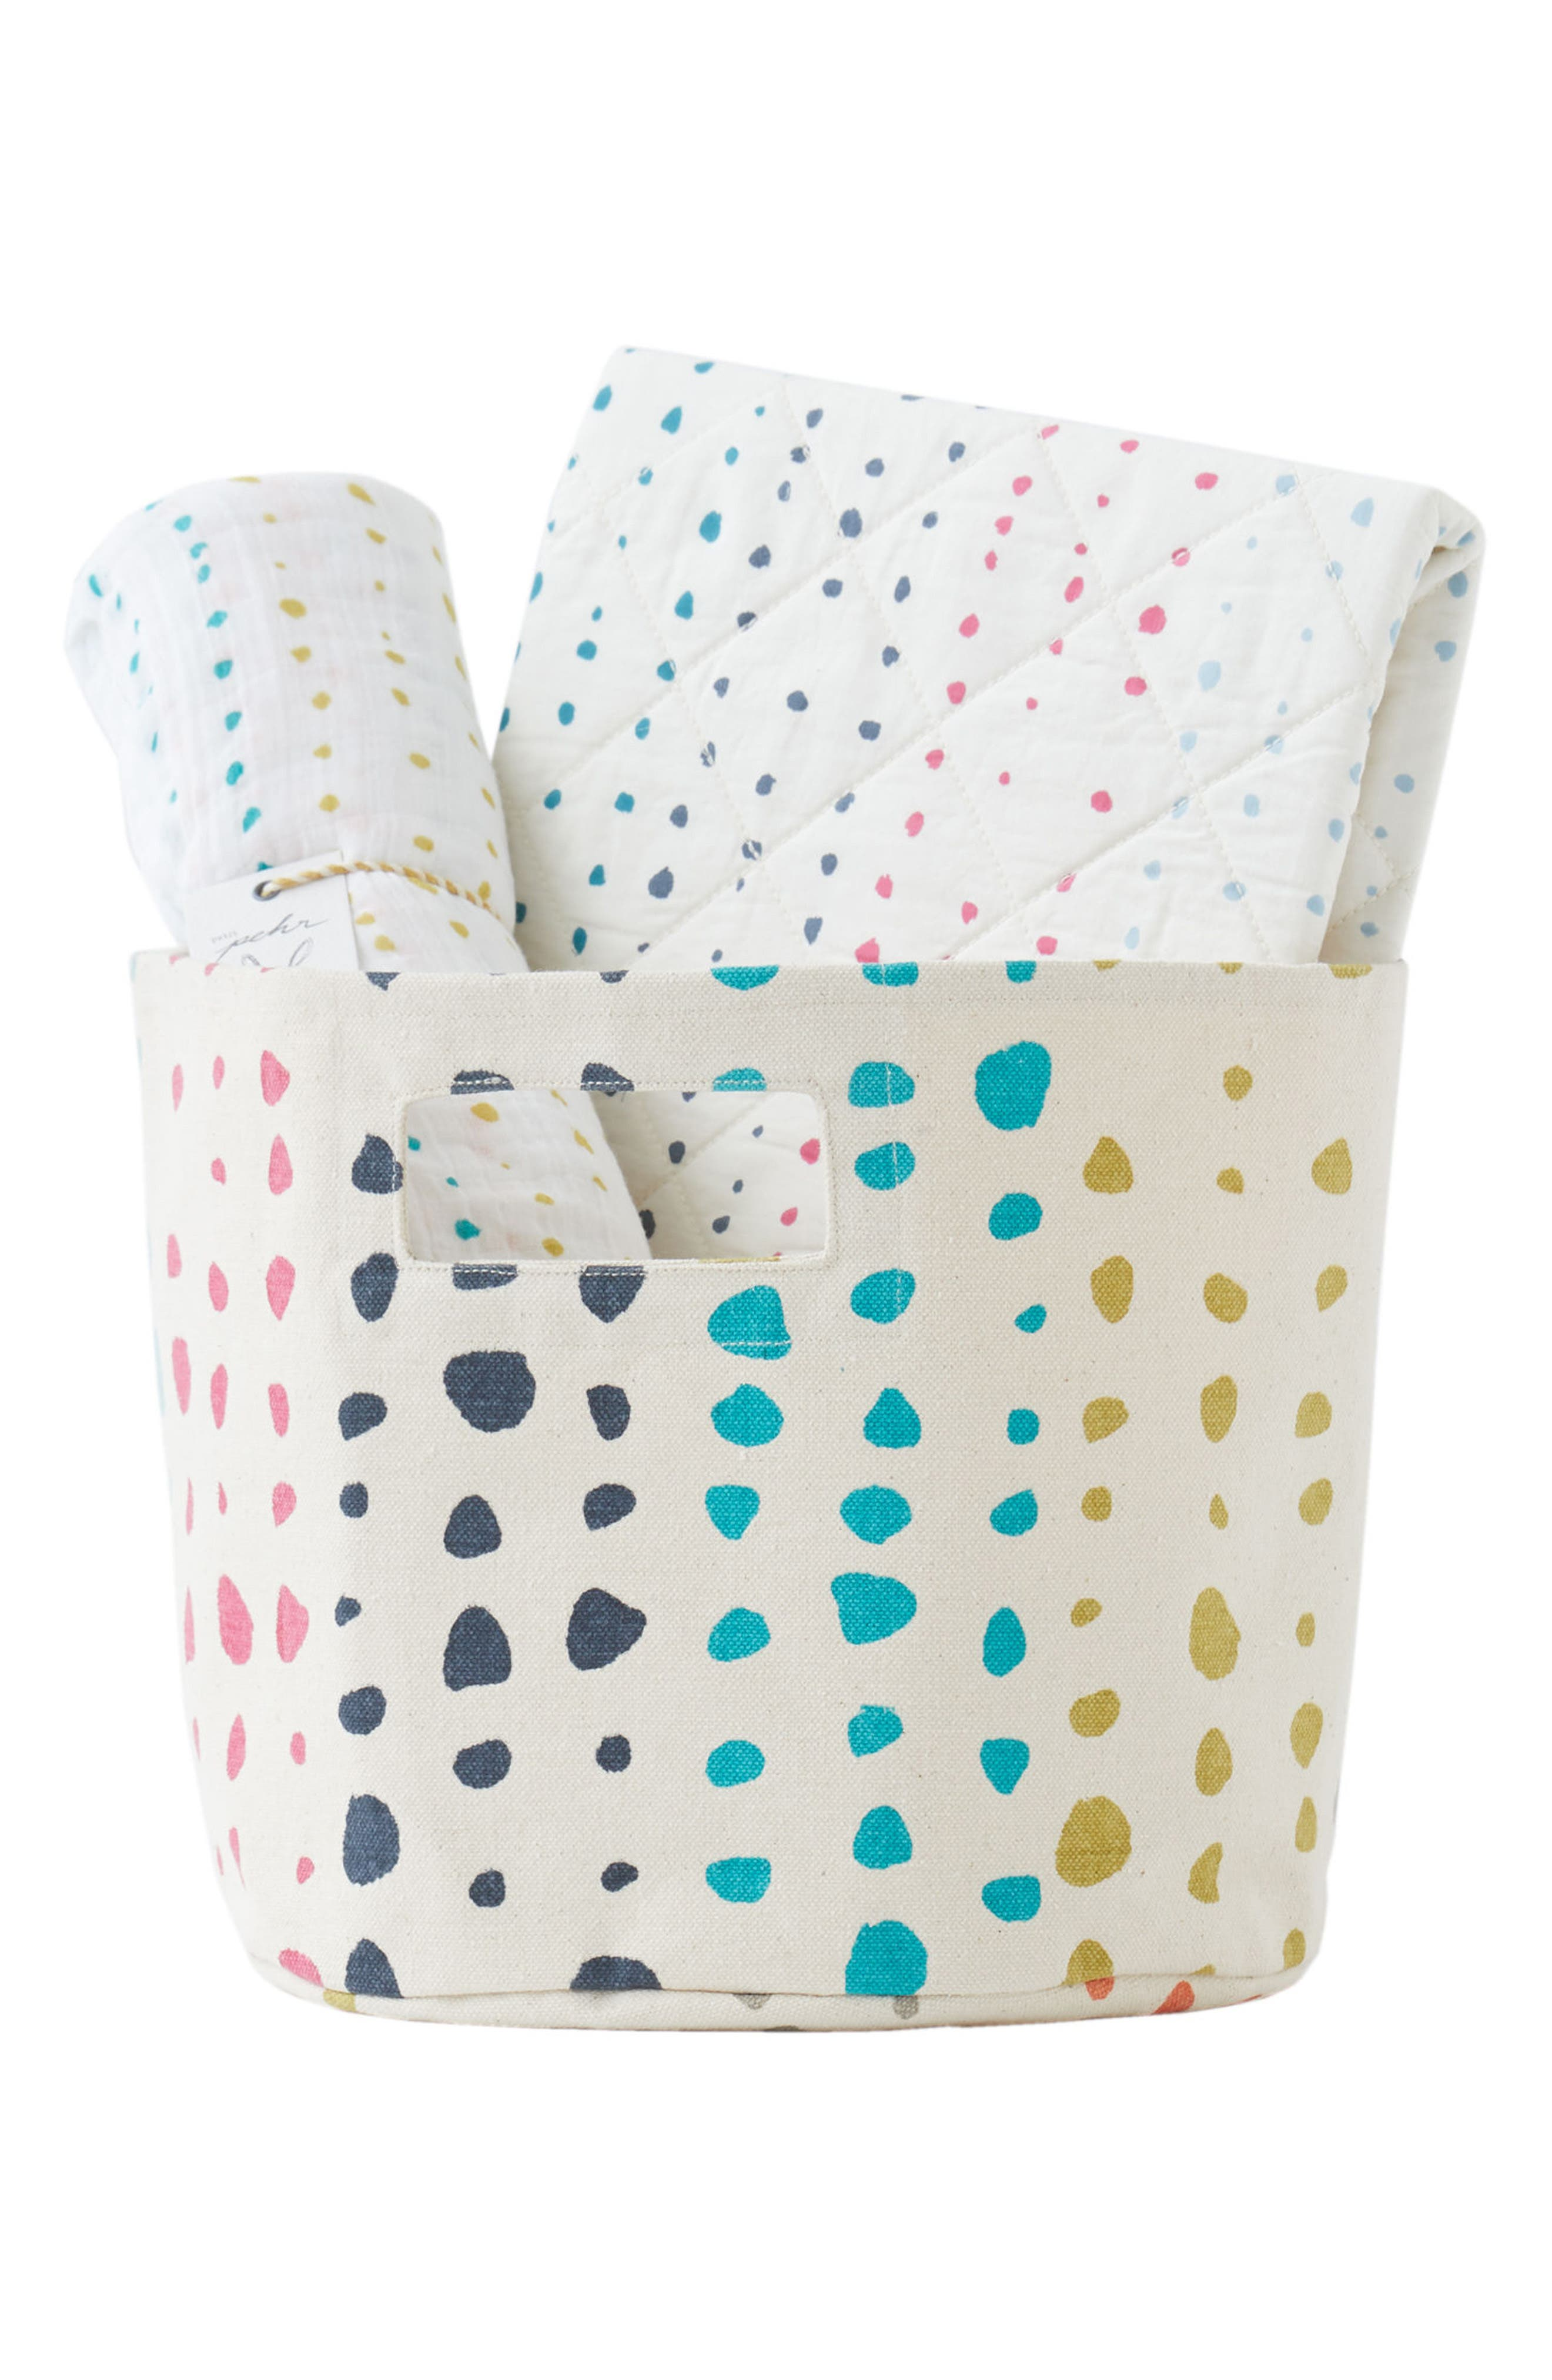 Painted Dots Changing Pad Cover, Swaddle & Bin Set,                         Main,                         color, 900